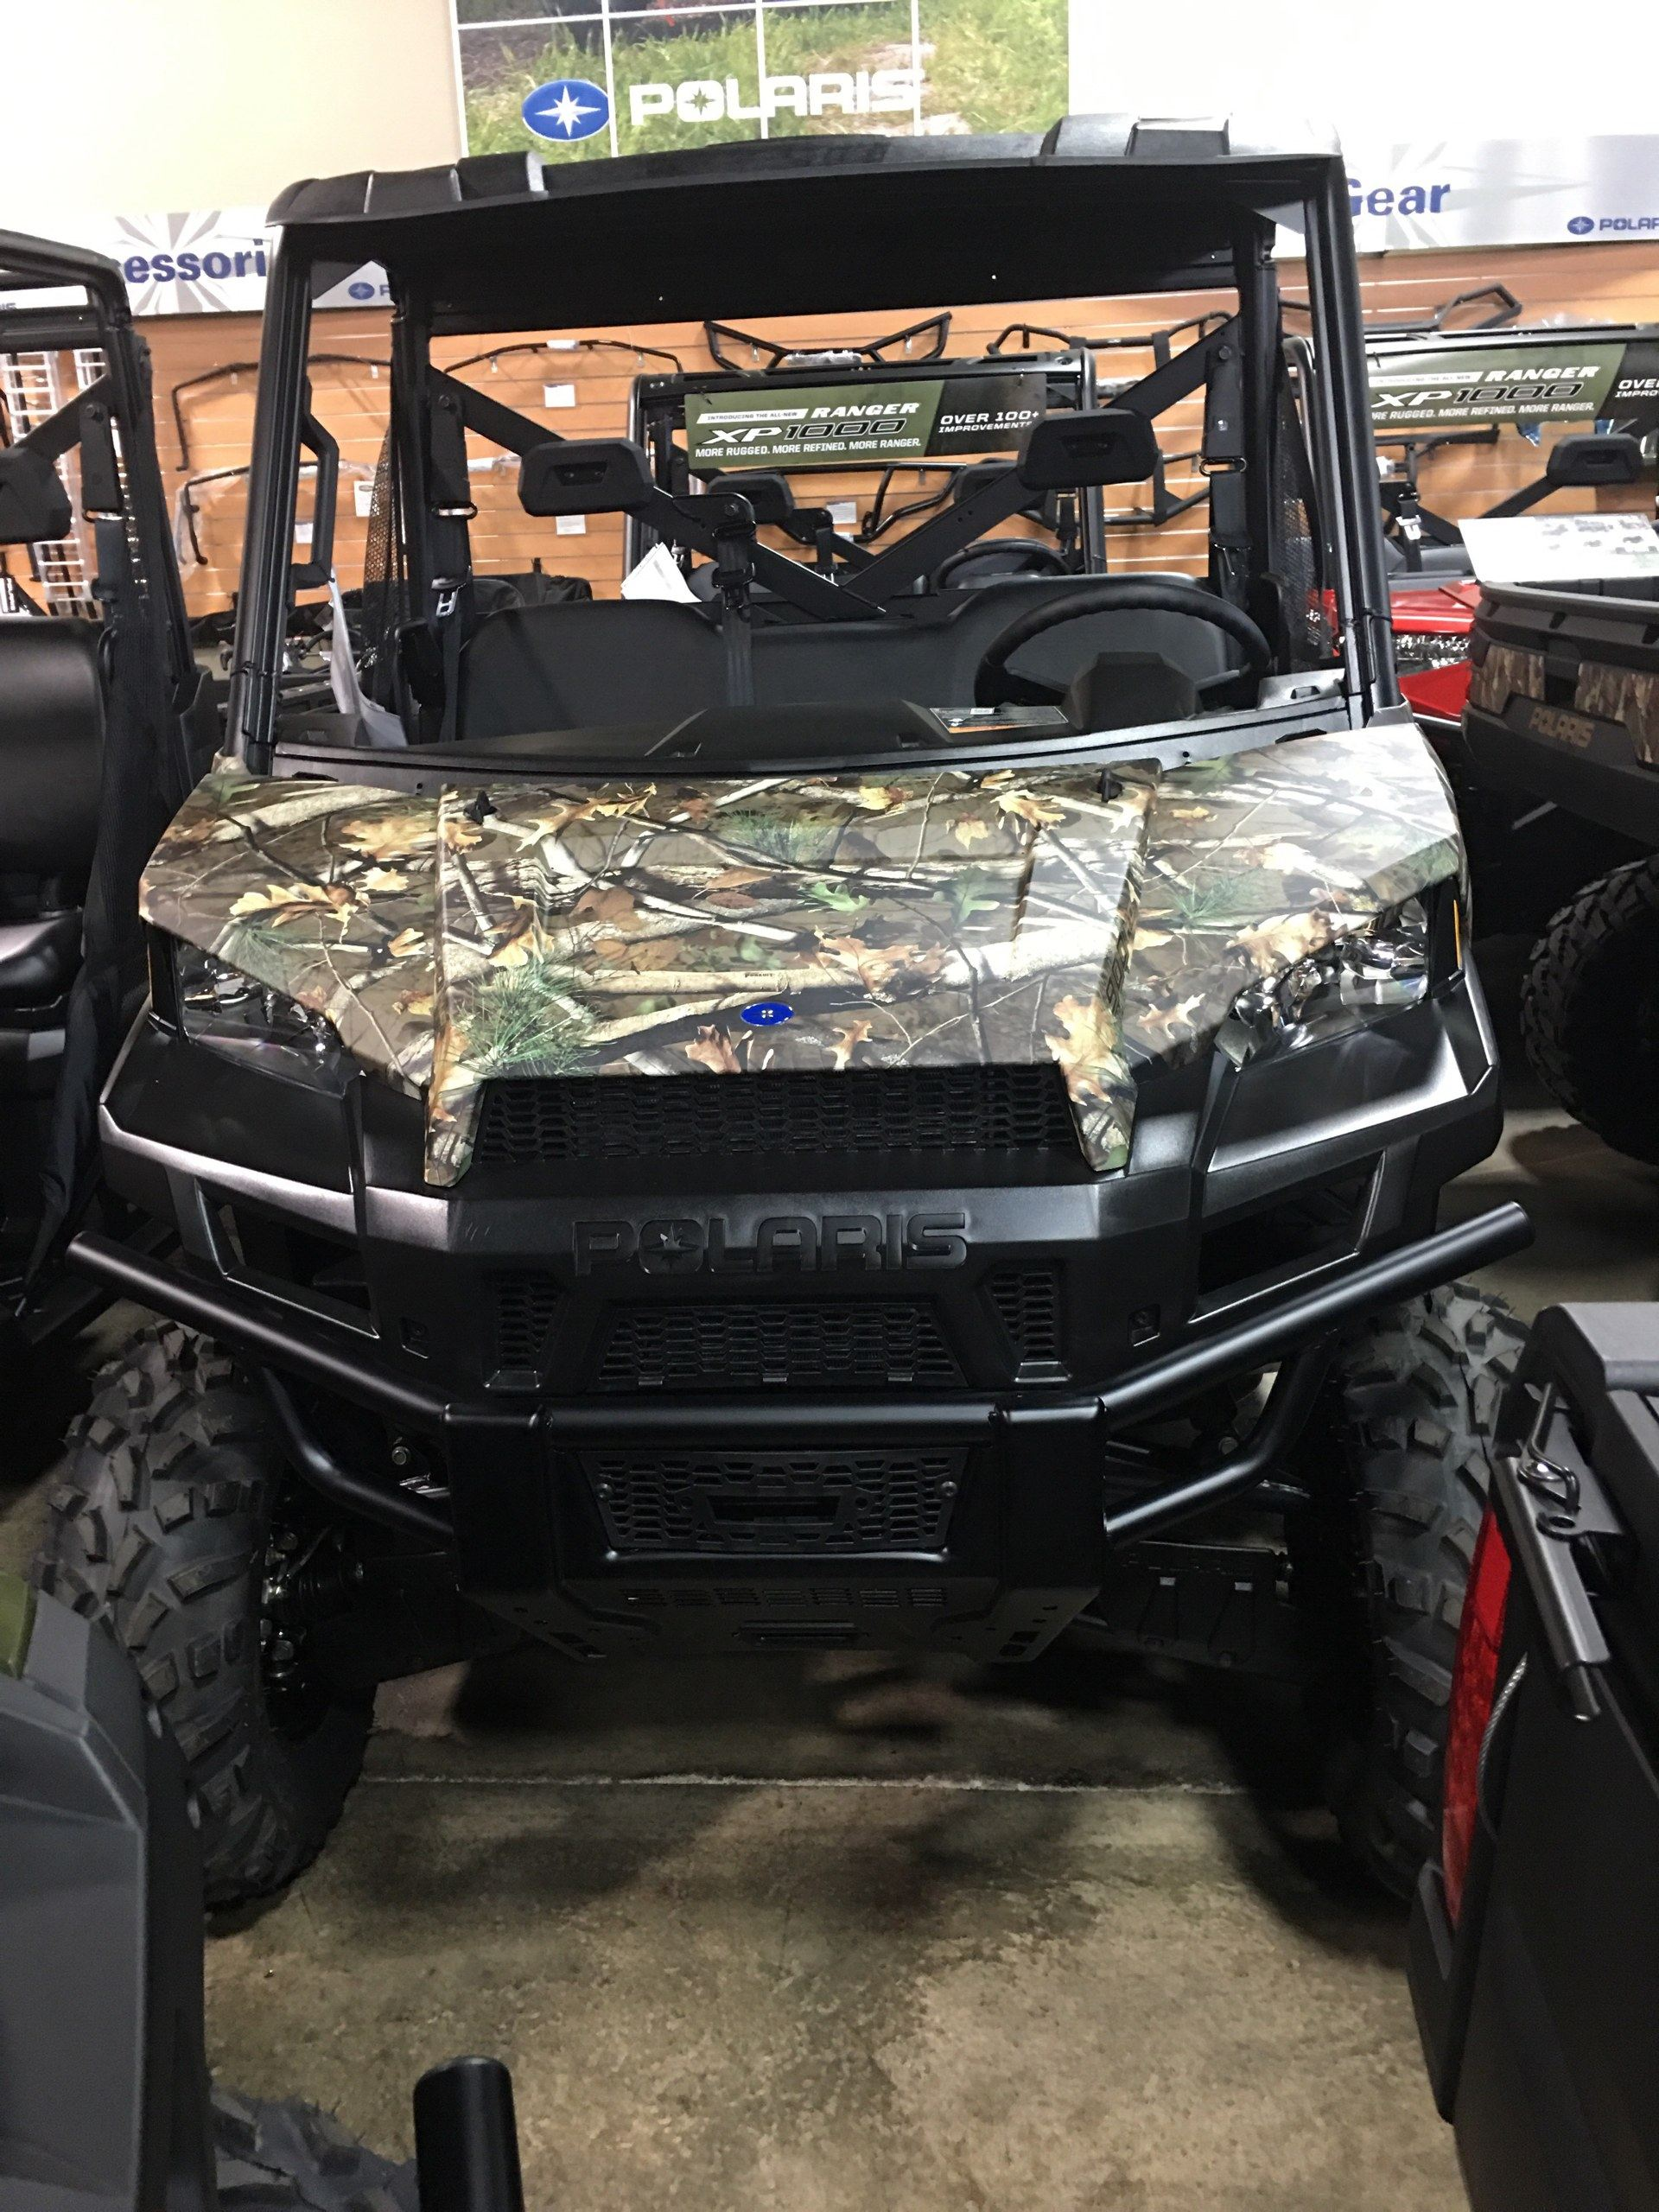 2019 Polaris Ranger XP 900 in Woodstock, Illinois - Photo 1